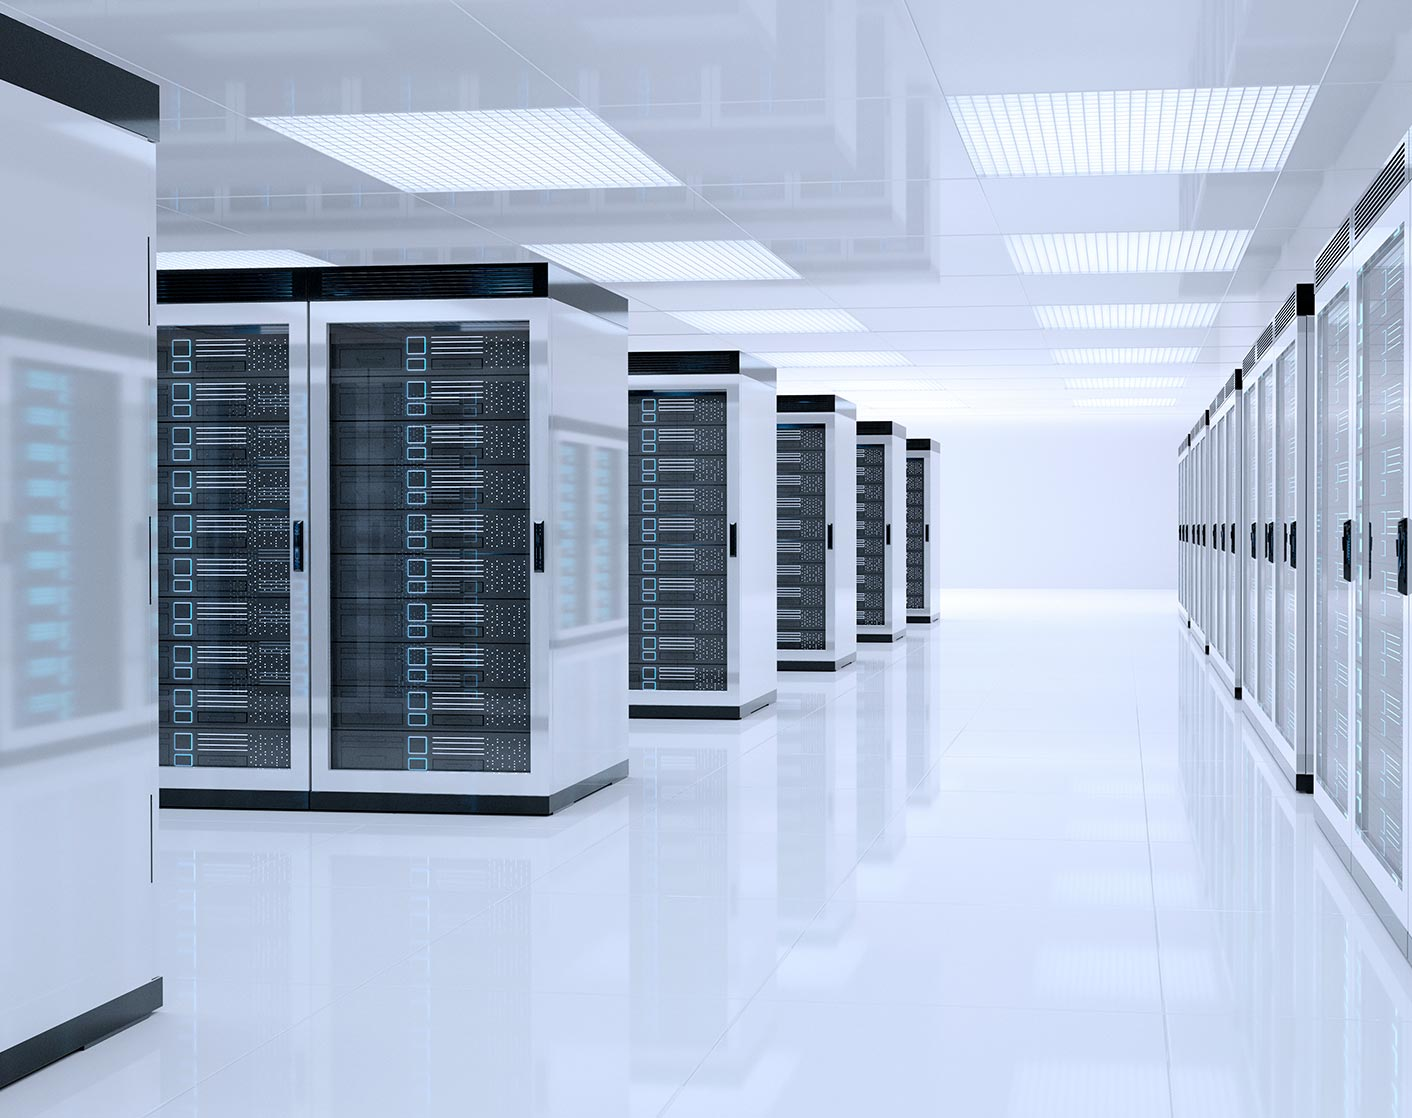 white room full of cloud servers